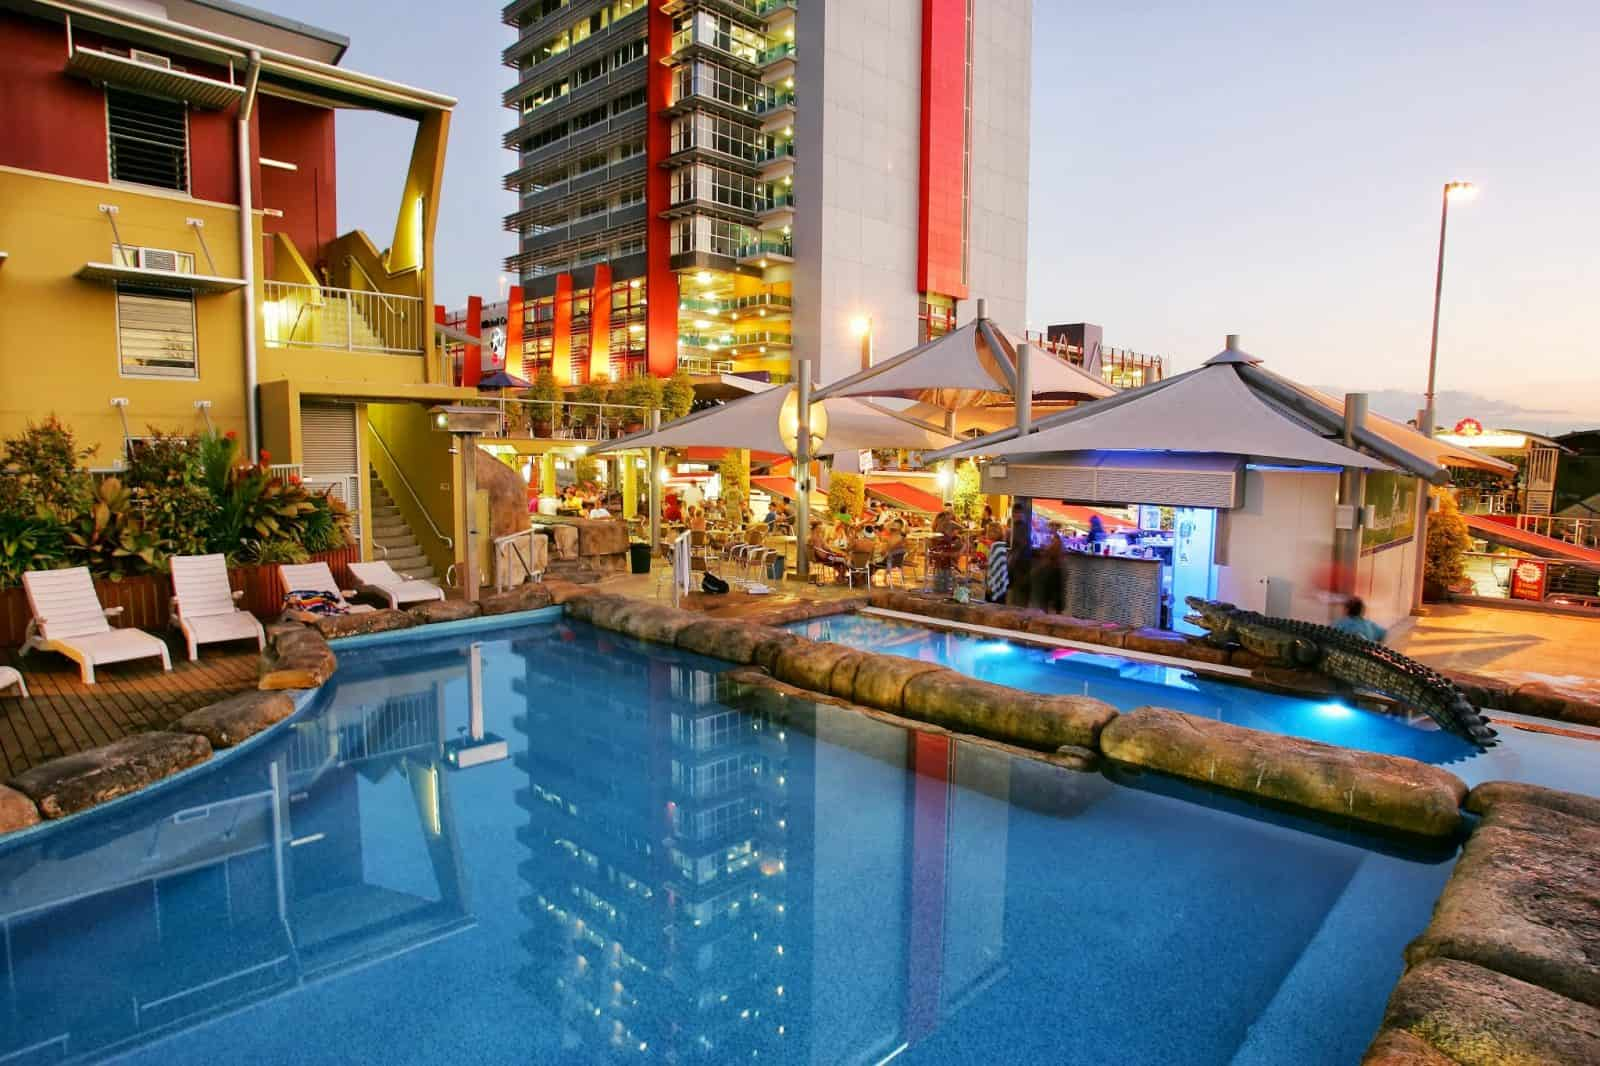 The 10 Best Hostels in Australia: Where to Stay on a Budget